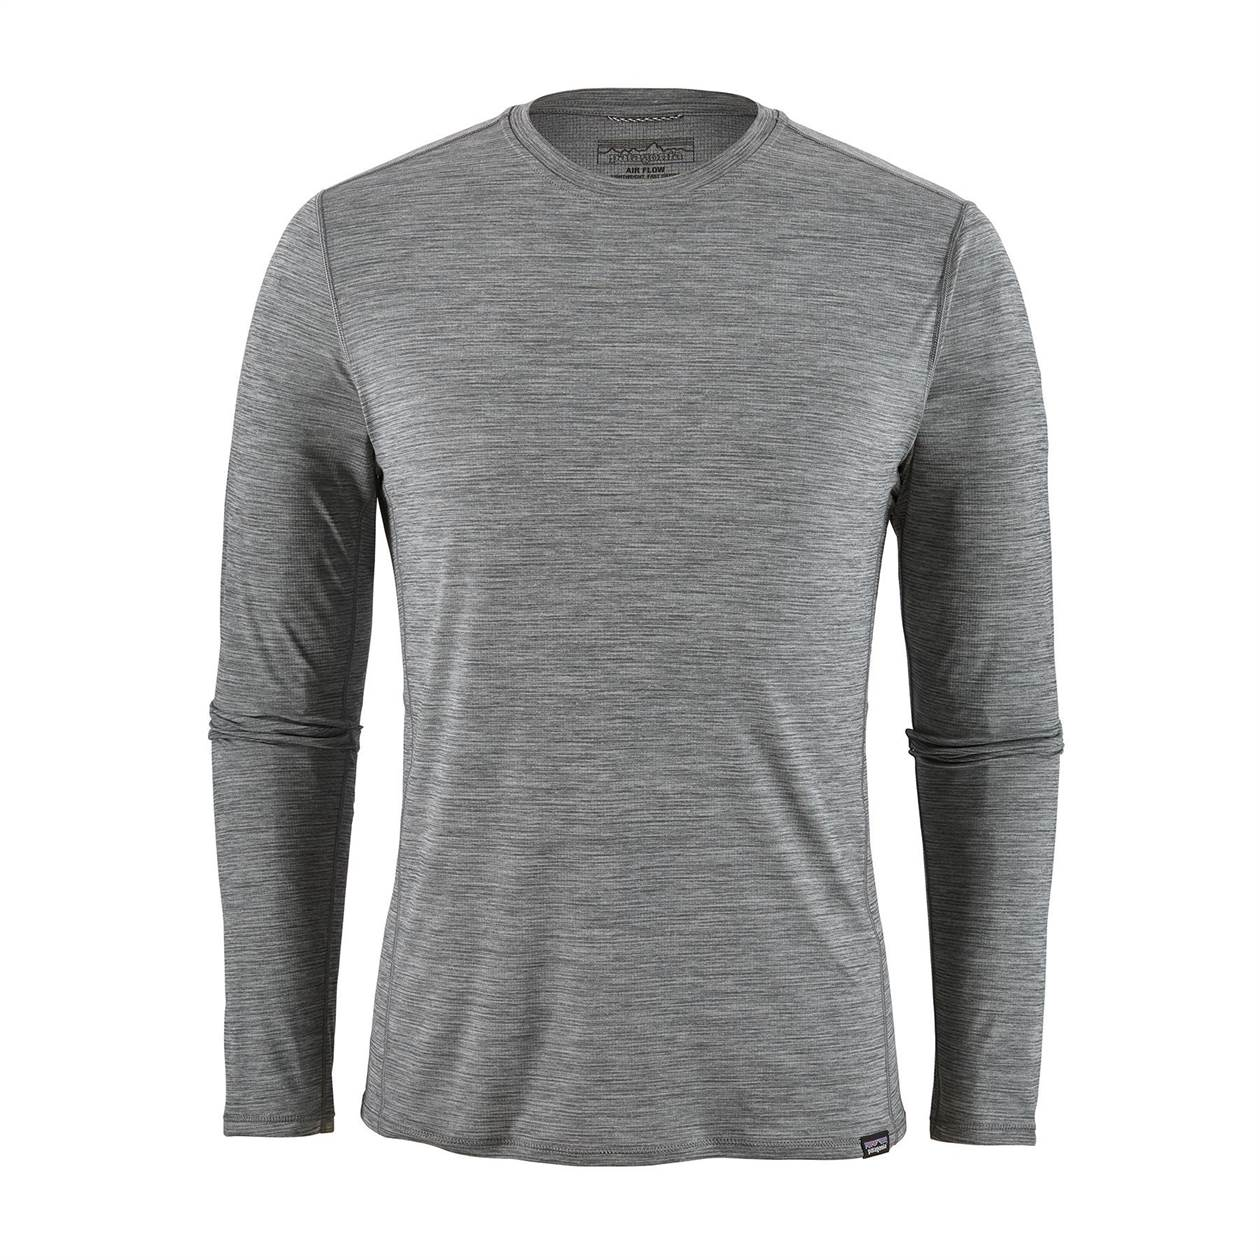 Cap Cool Lightweight Shirt Long Sleeve - Men's